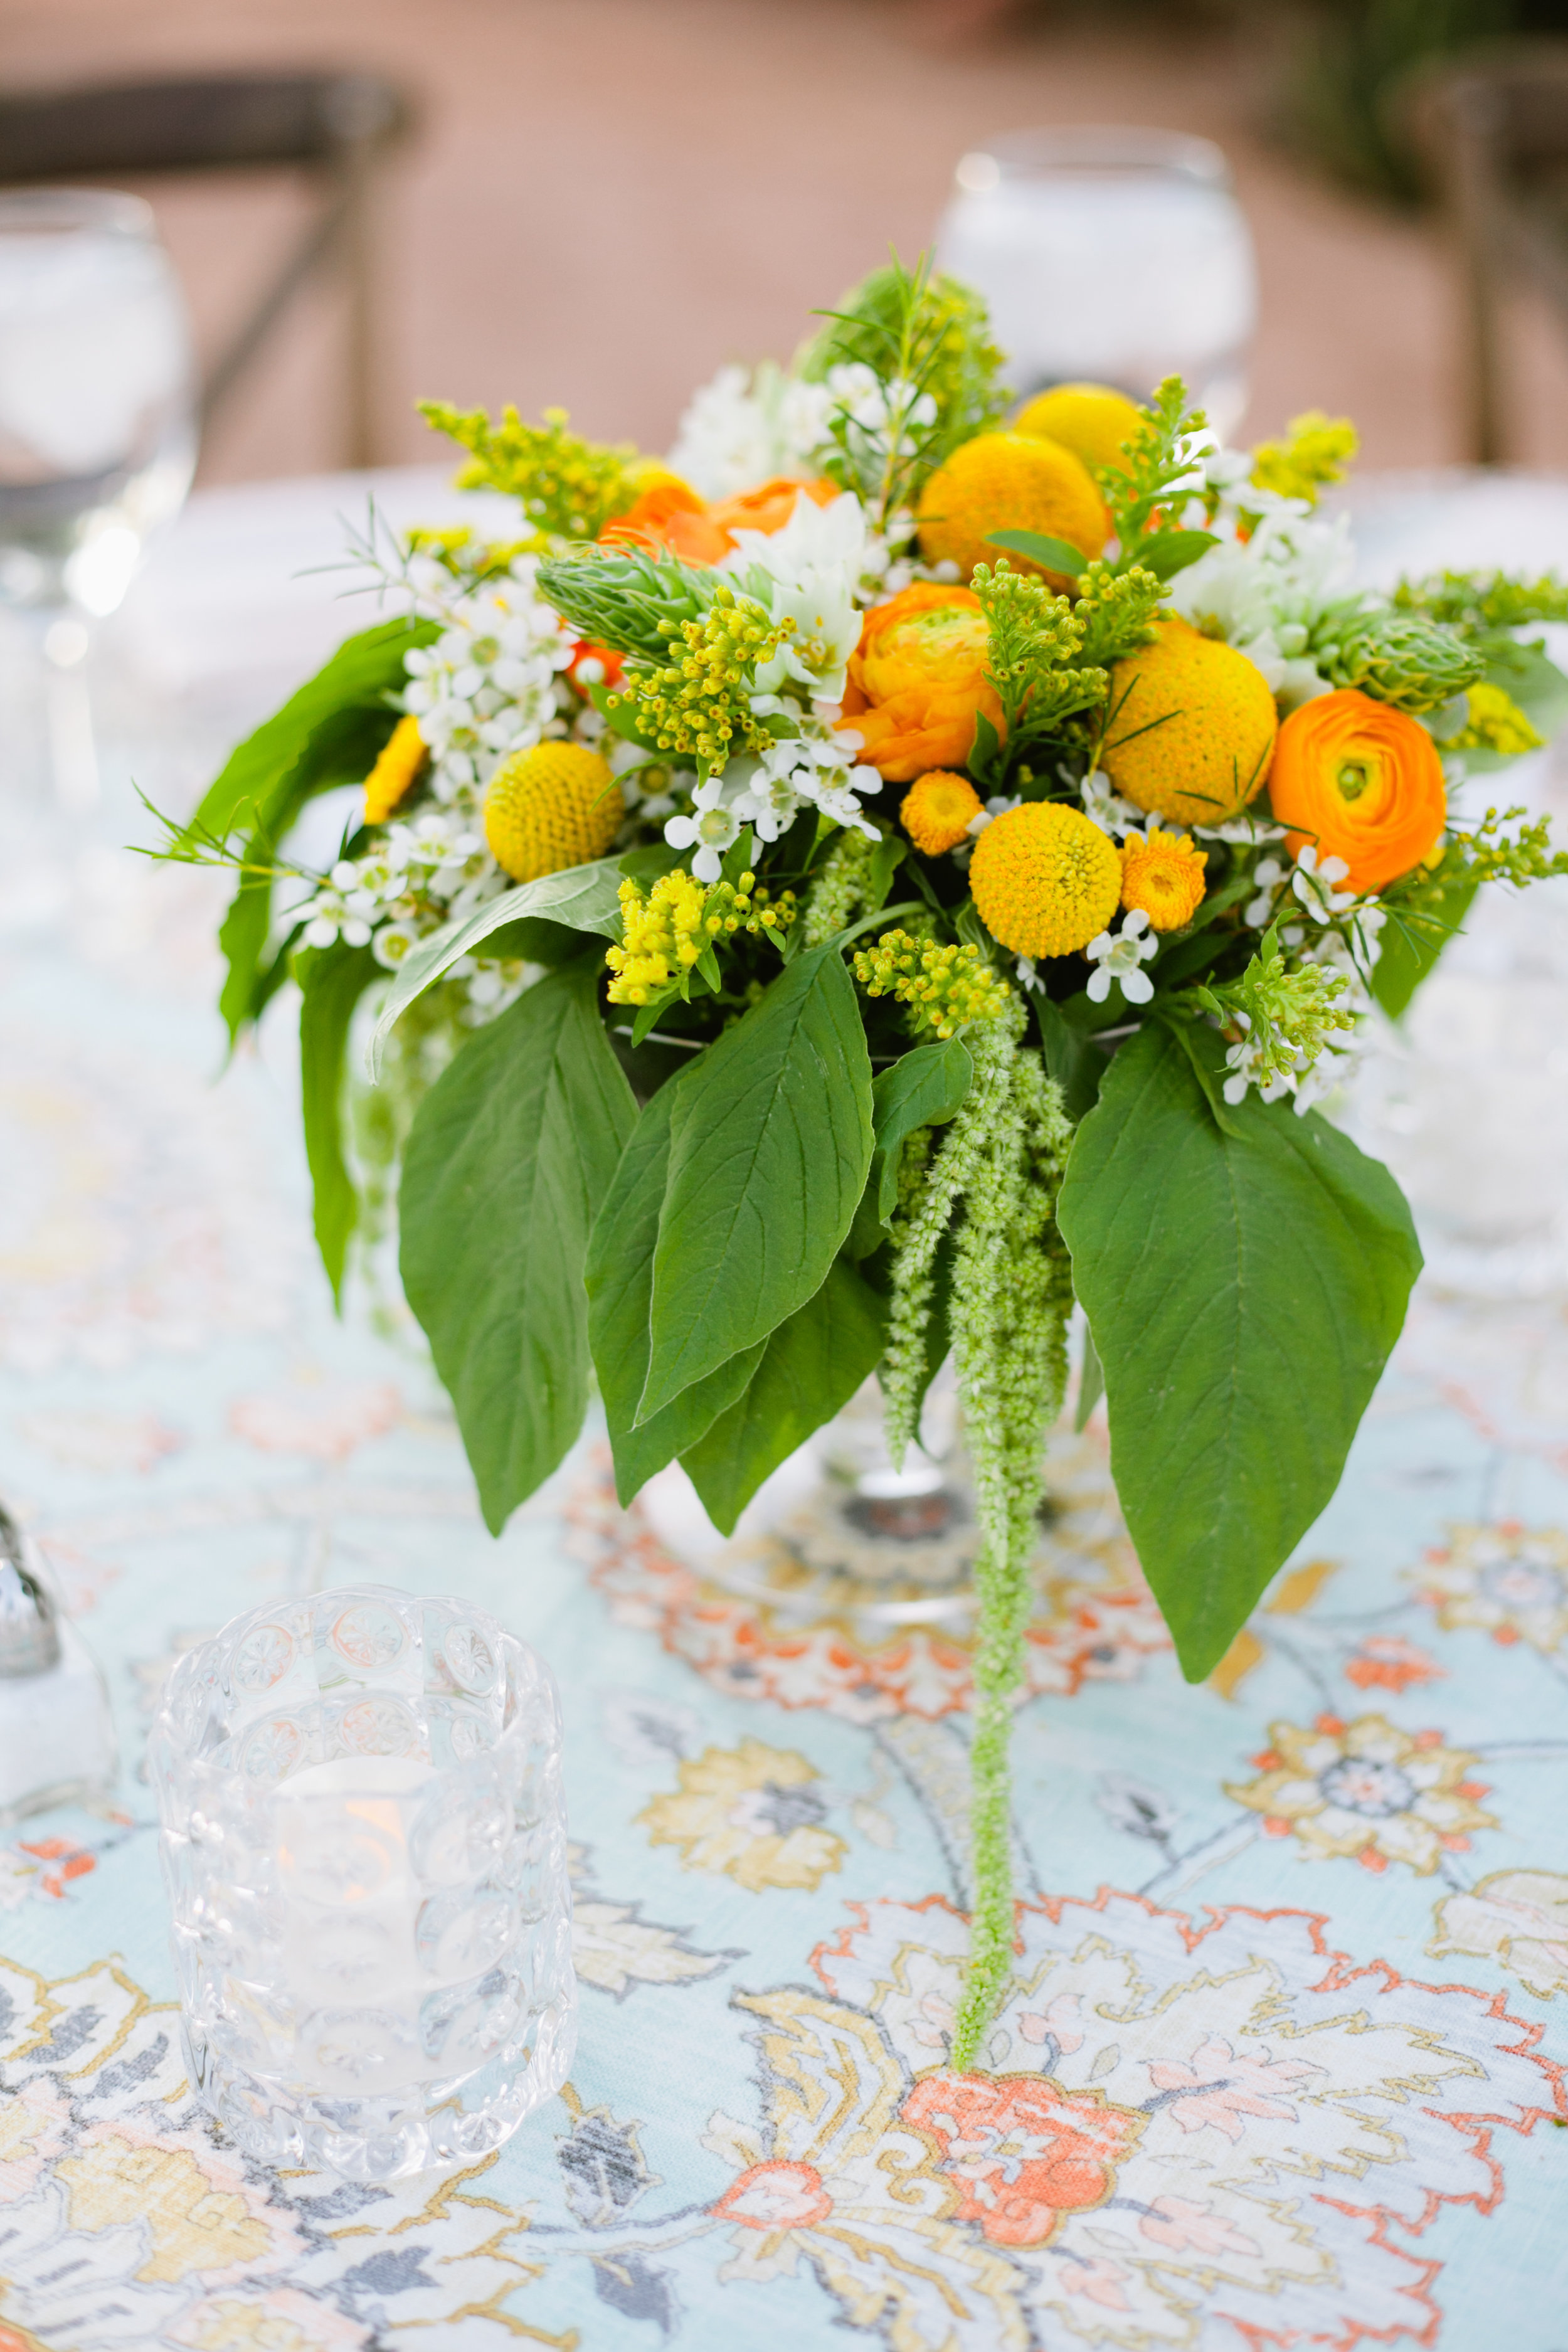 Anthony-and-Stork-Desert-botanical-gardens-Italy-Style-Dinner-spring-florals.jpg